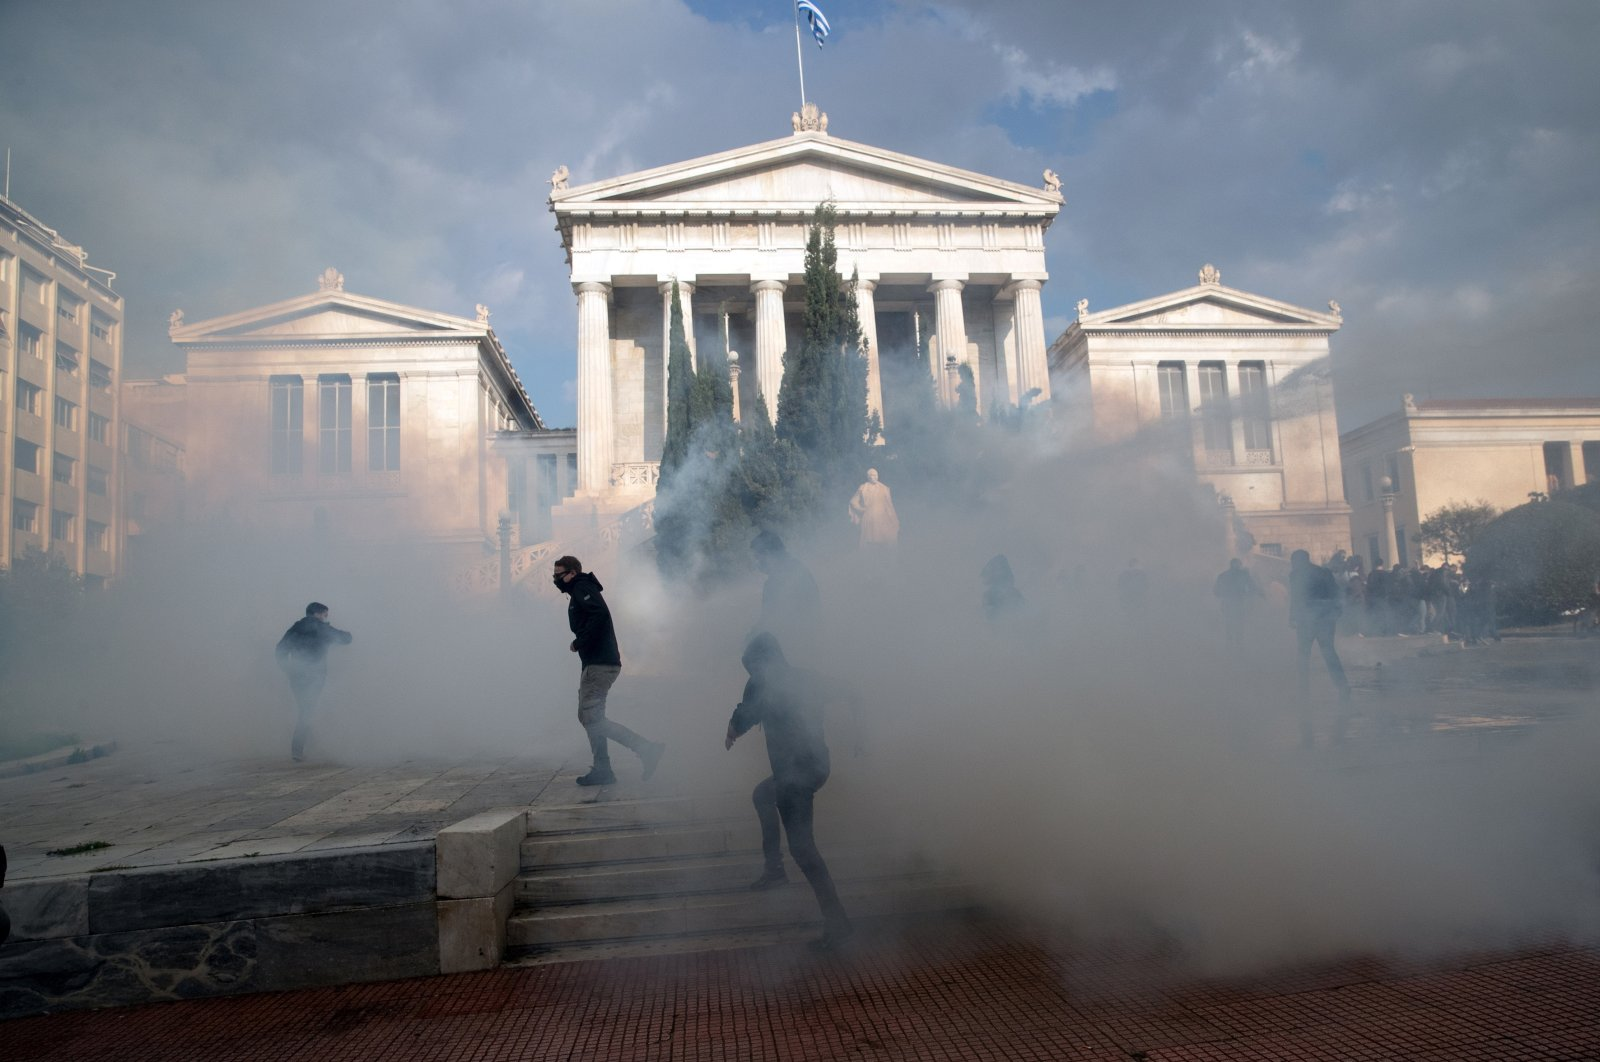 Members of the Greek Communist Party (KKE) flee tear gas and a water cannon during clashes with riot police, as the Greek government banned the annual march to mark the anniversary of a 1973 student revolt against the then military junta due to coronavirus, in Athens, Greece, Nov. 17, 2020. (Reuters Photo)